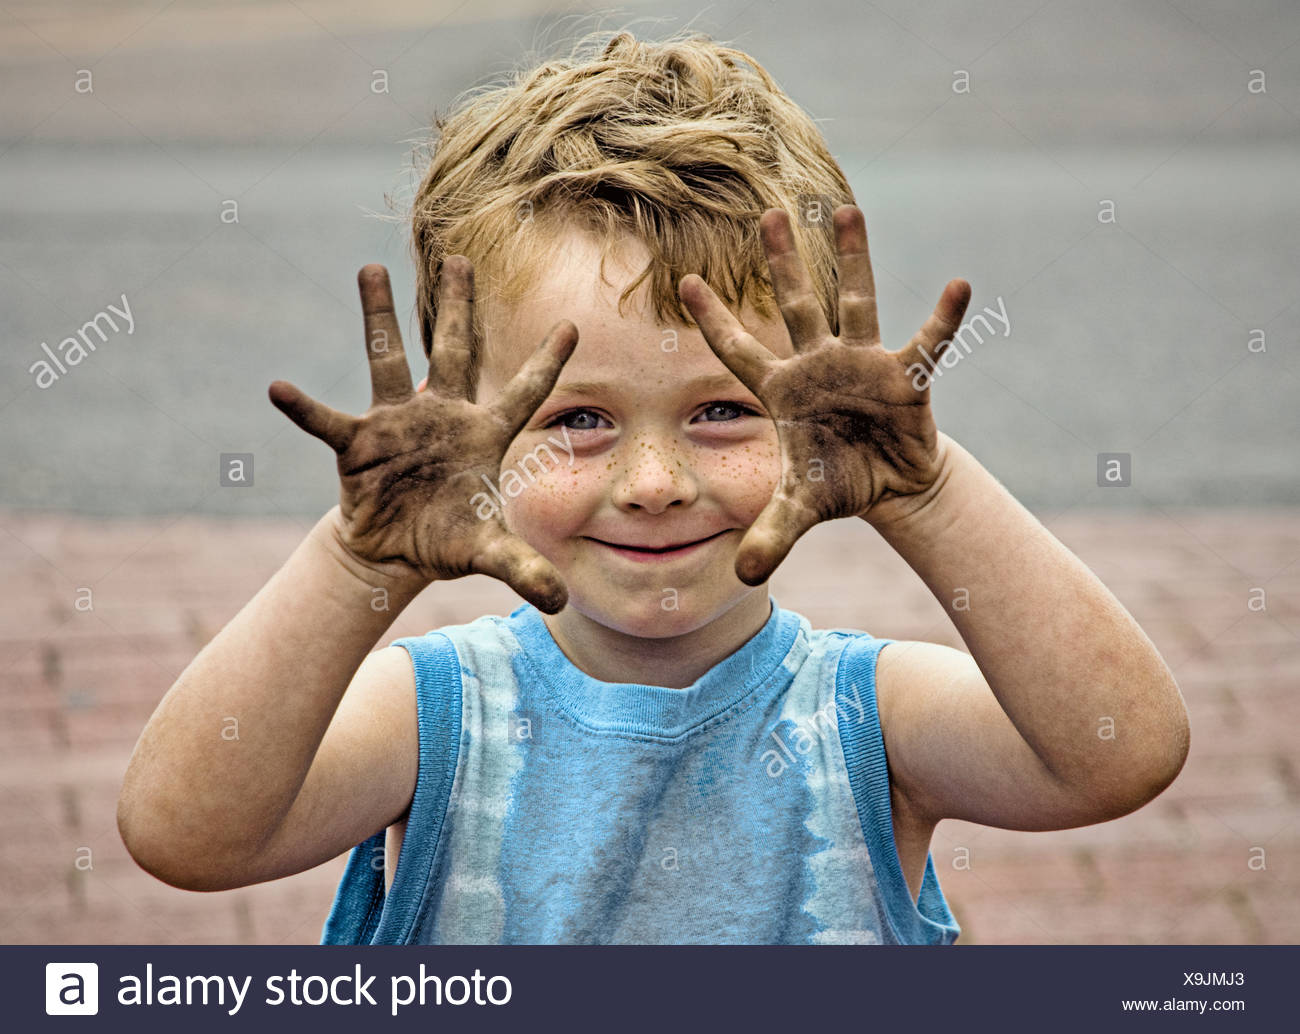 Boy with dirty hands. - Stock Image